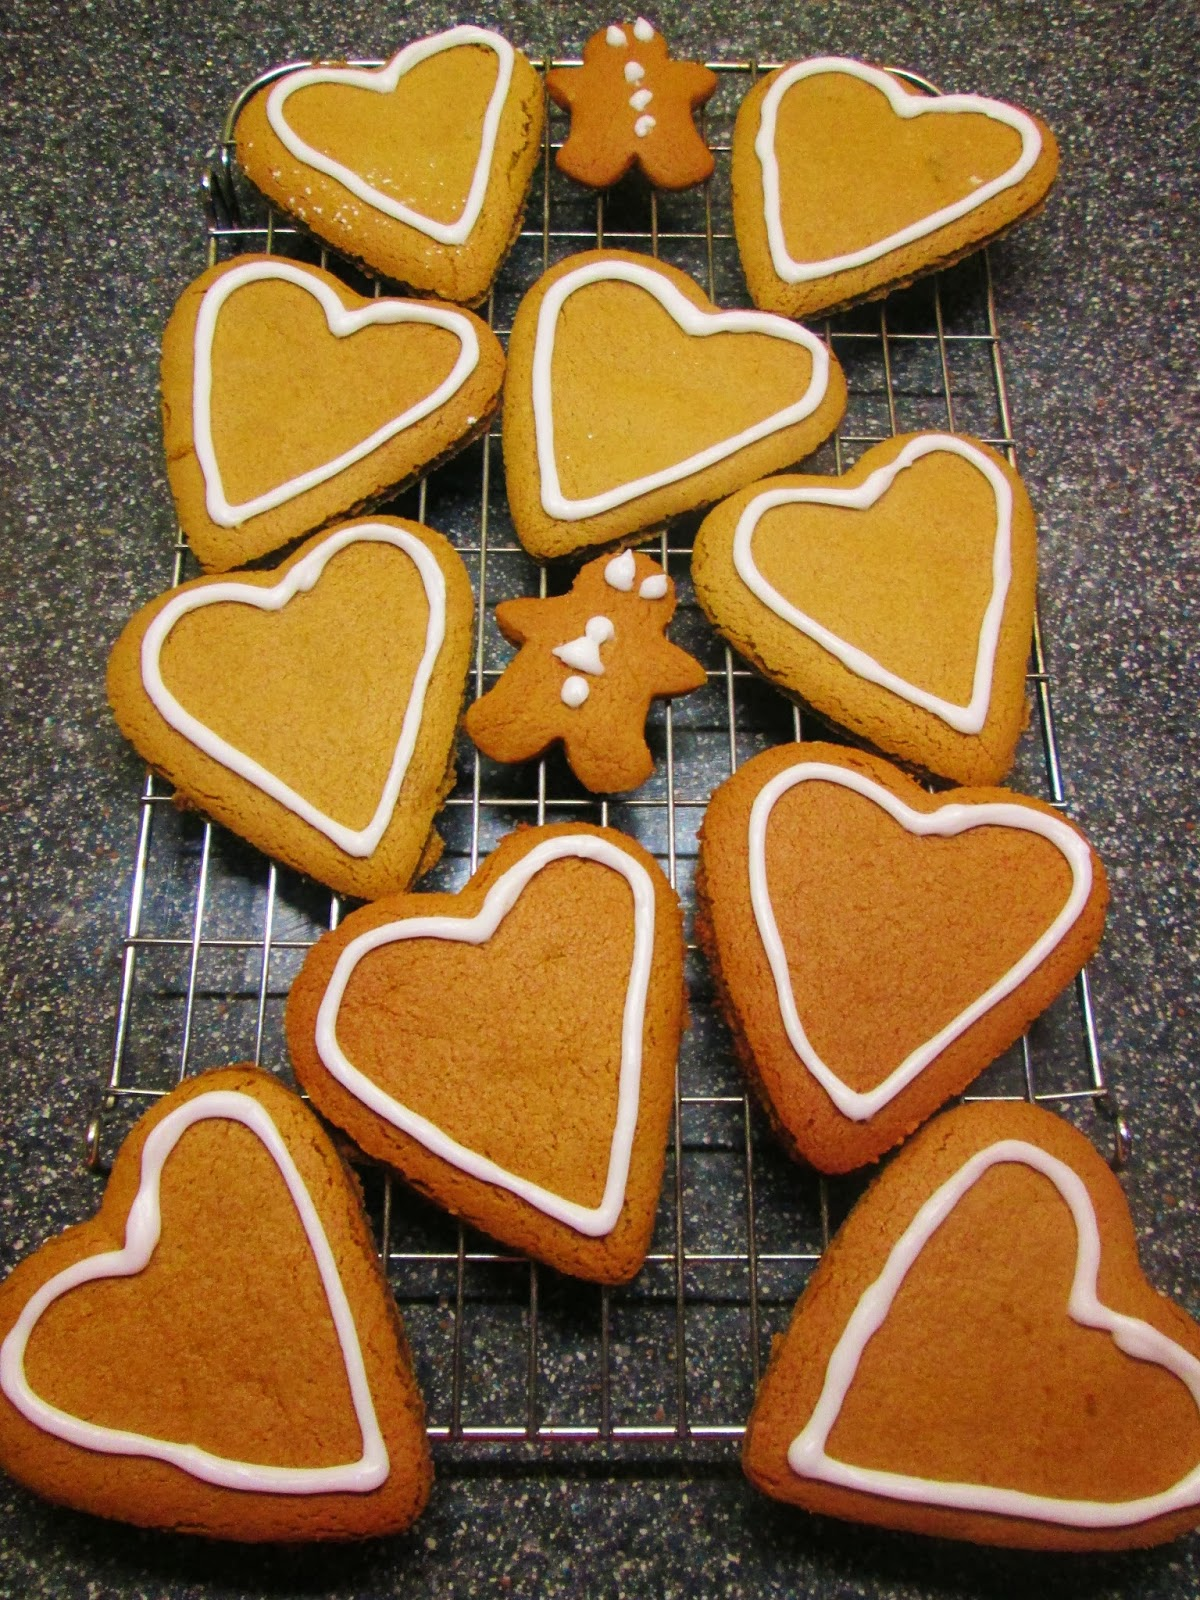 http://themessykitchenuk.blogspot.co.uk/2013/09/gingerbread-hearts.html